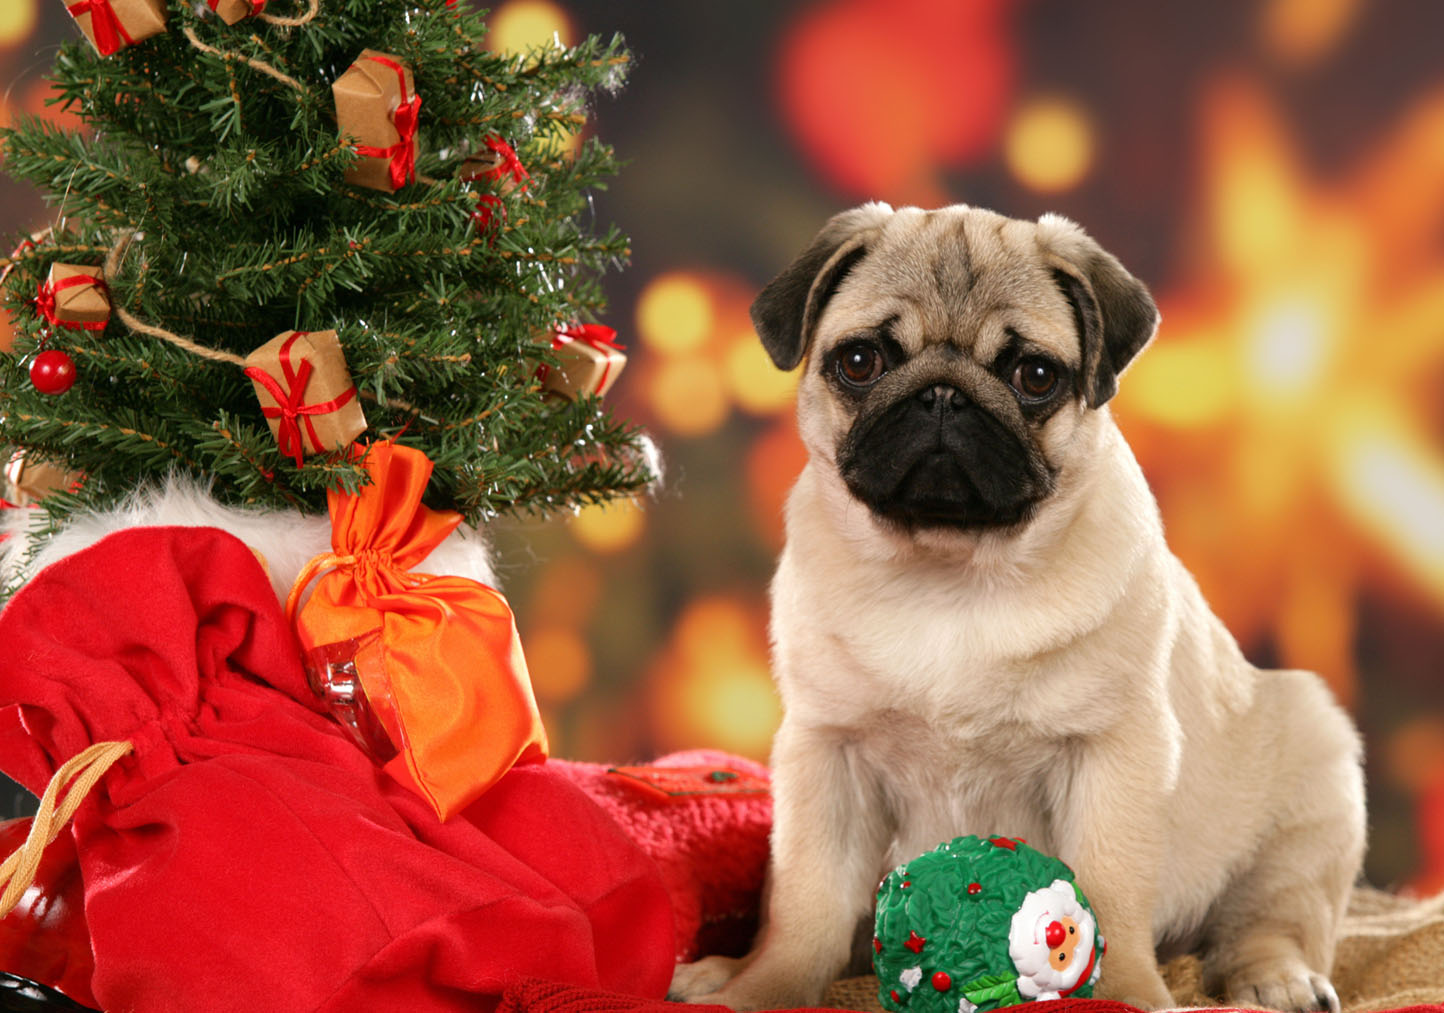 Cute Christmas Dog Wallpapers - HD Wallpapers Pop